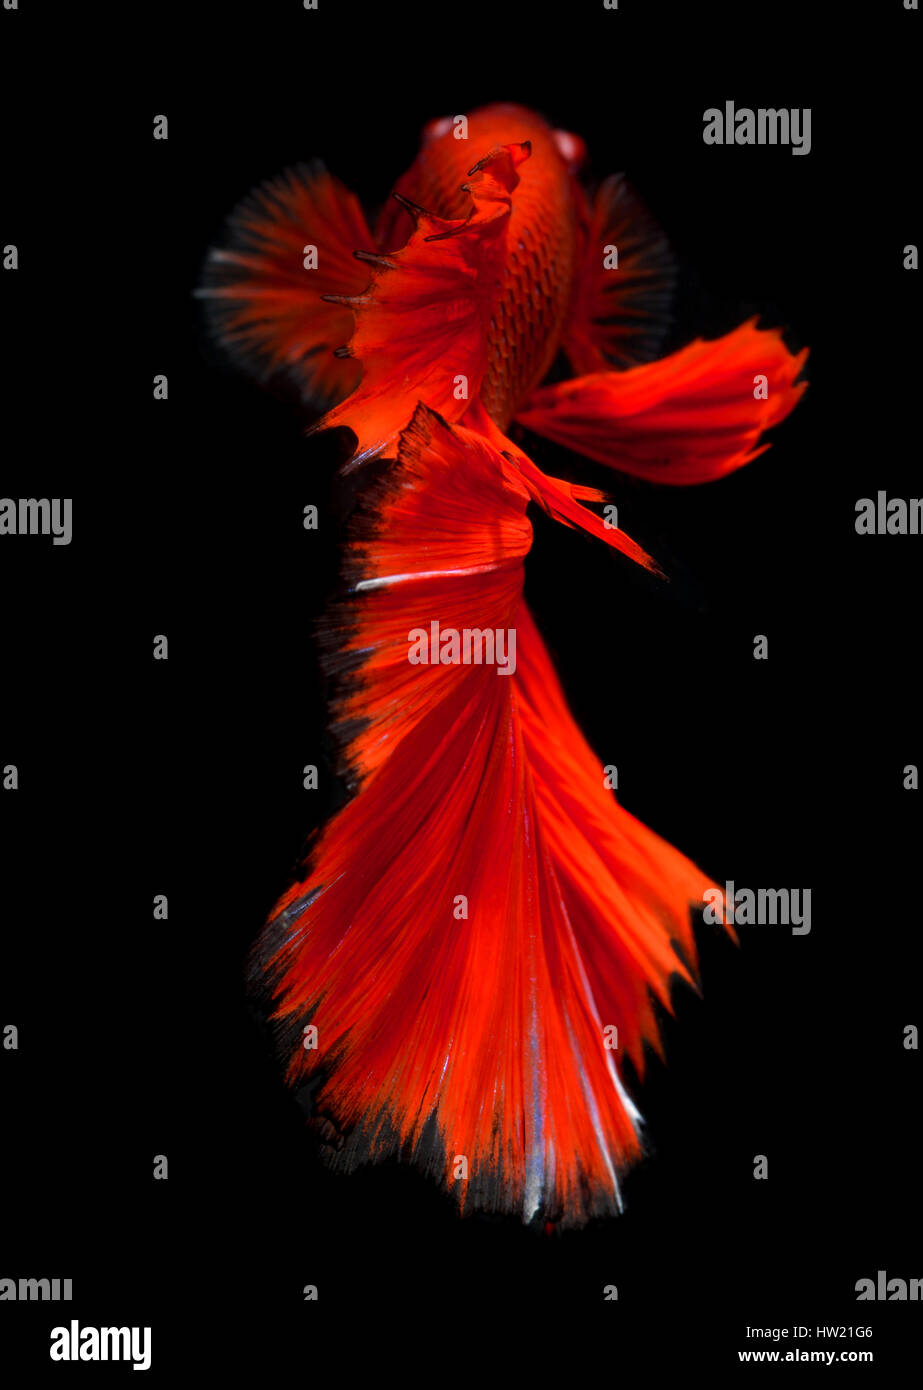 Action of Red haft moon long tail Betta fish or Siamese fighting fish photo in flash studio lighting. - Stock Image